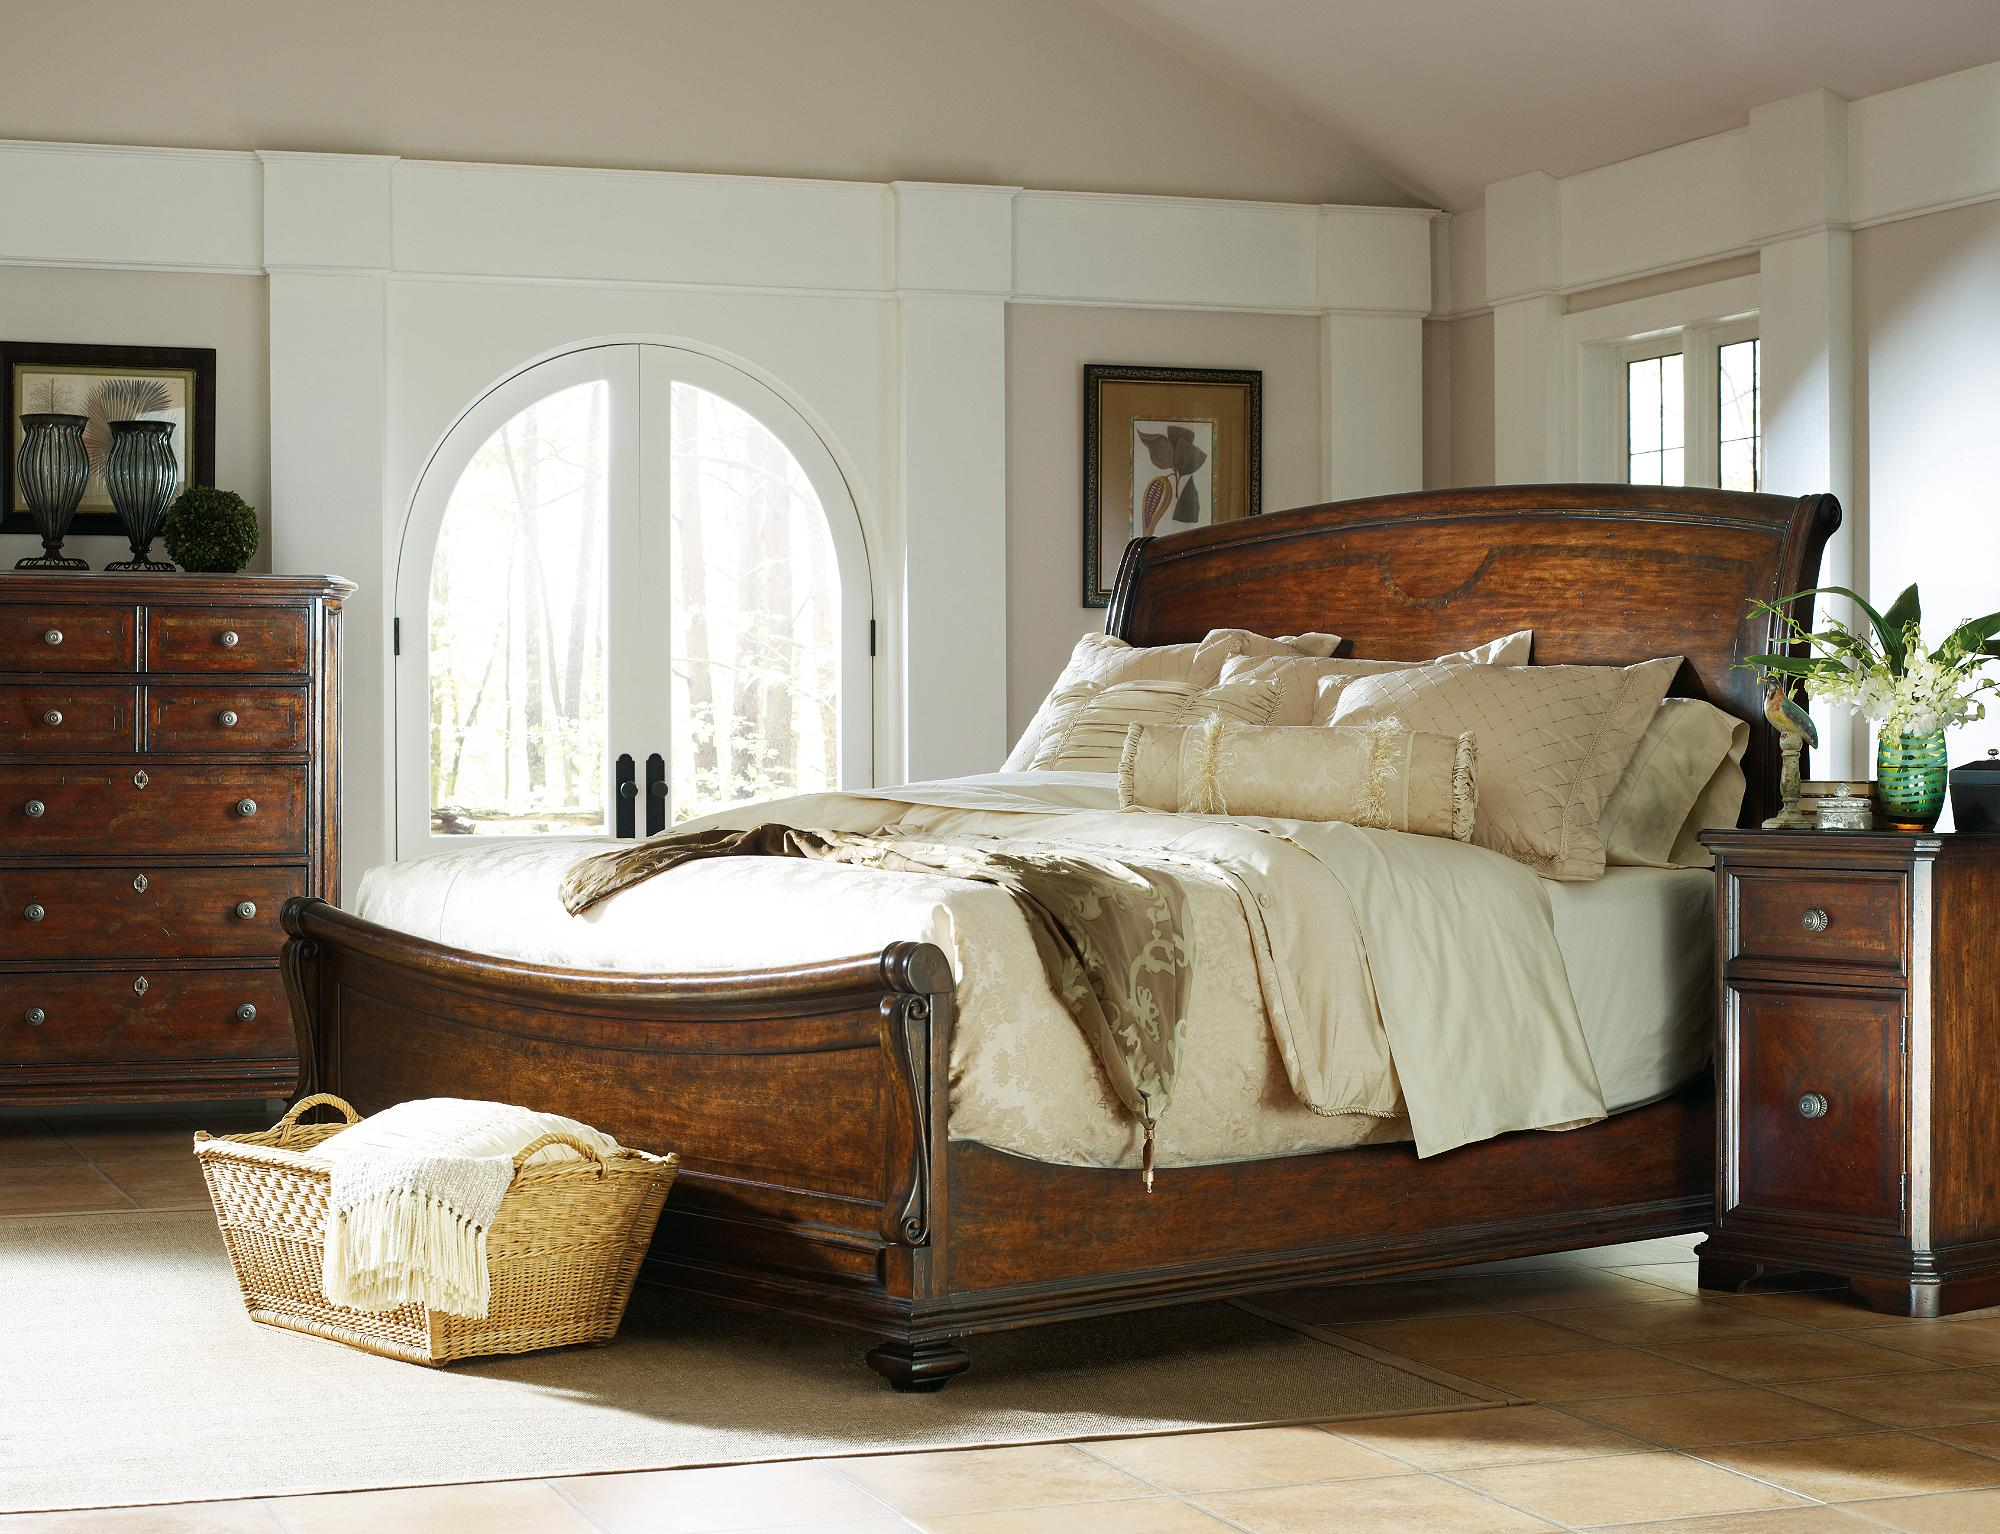 Stanley Furniture The Classic Portfolio Continental California King Bedroom Group - Item Number: 128-13 CK Bedroom Group 2